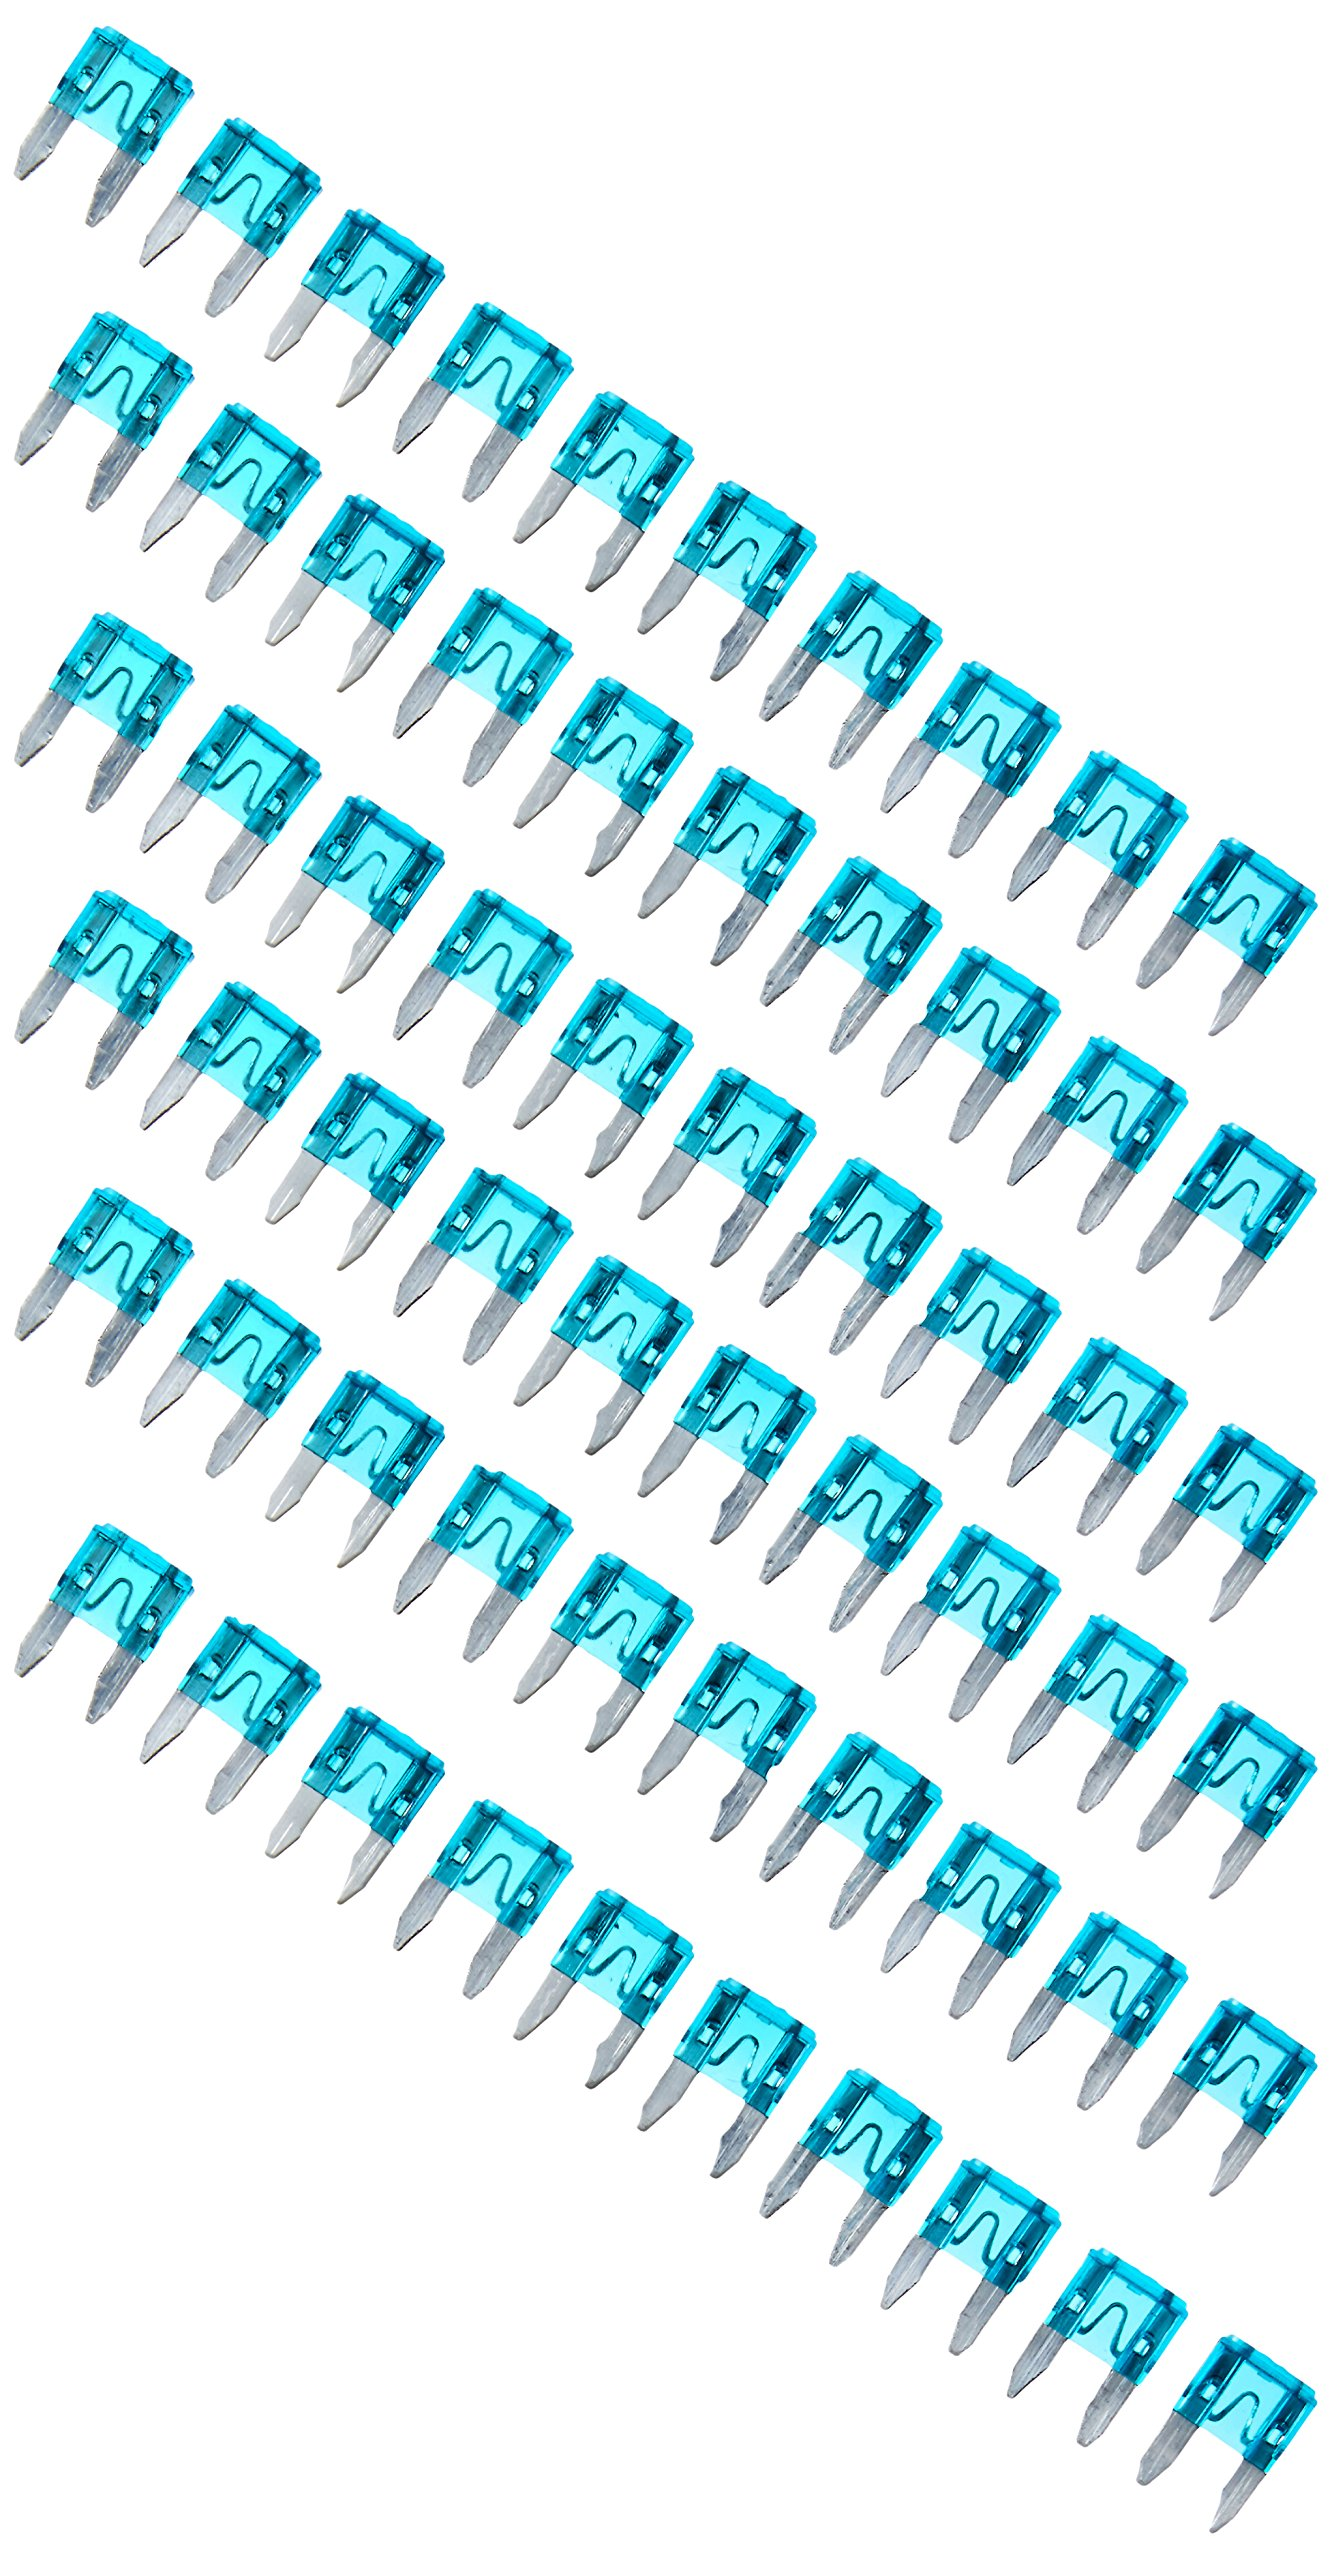 15A 15 Amp Auto Car Motorcycle Mini Blade Fuse Blue 60 Pieces